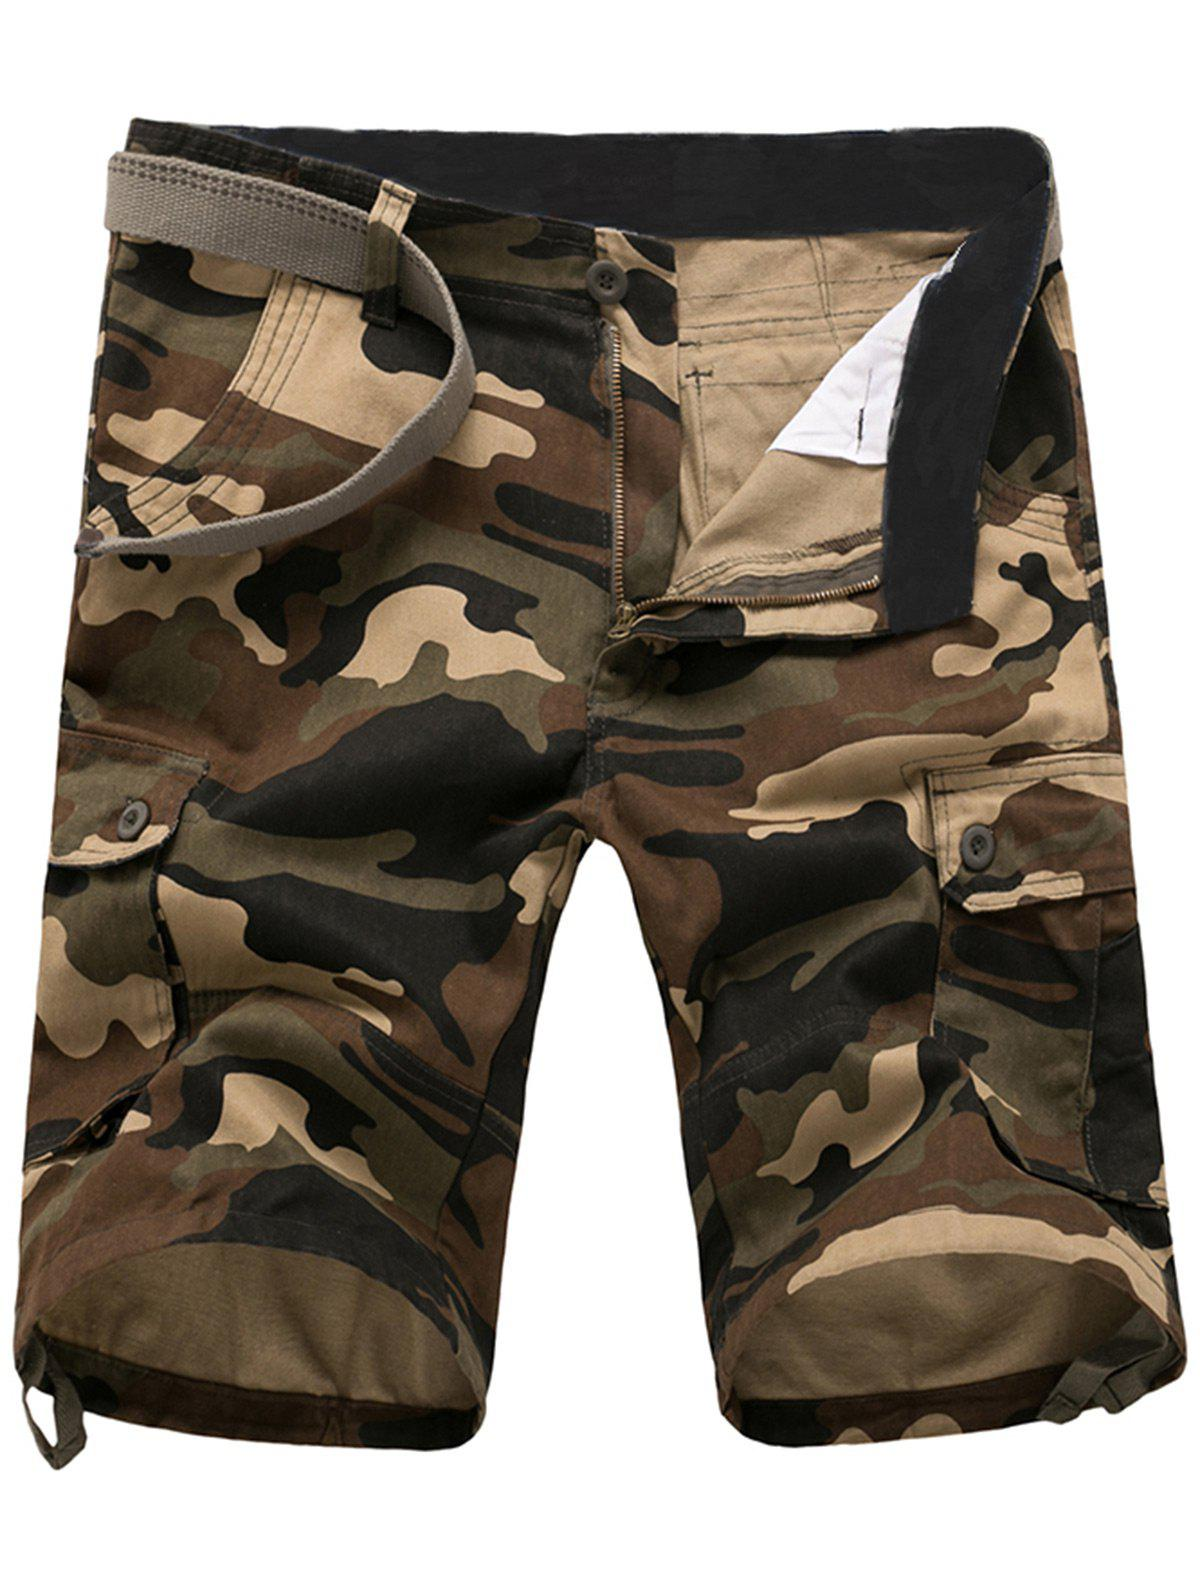 Zipper Fly Poches Camouflage Cargo Shorts - Kaki 34